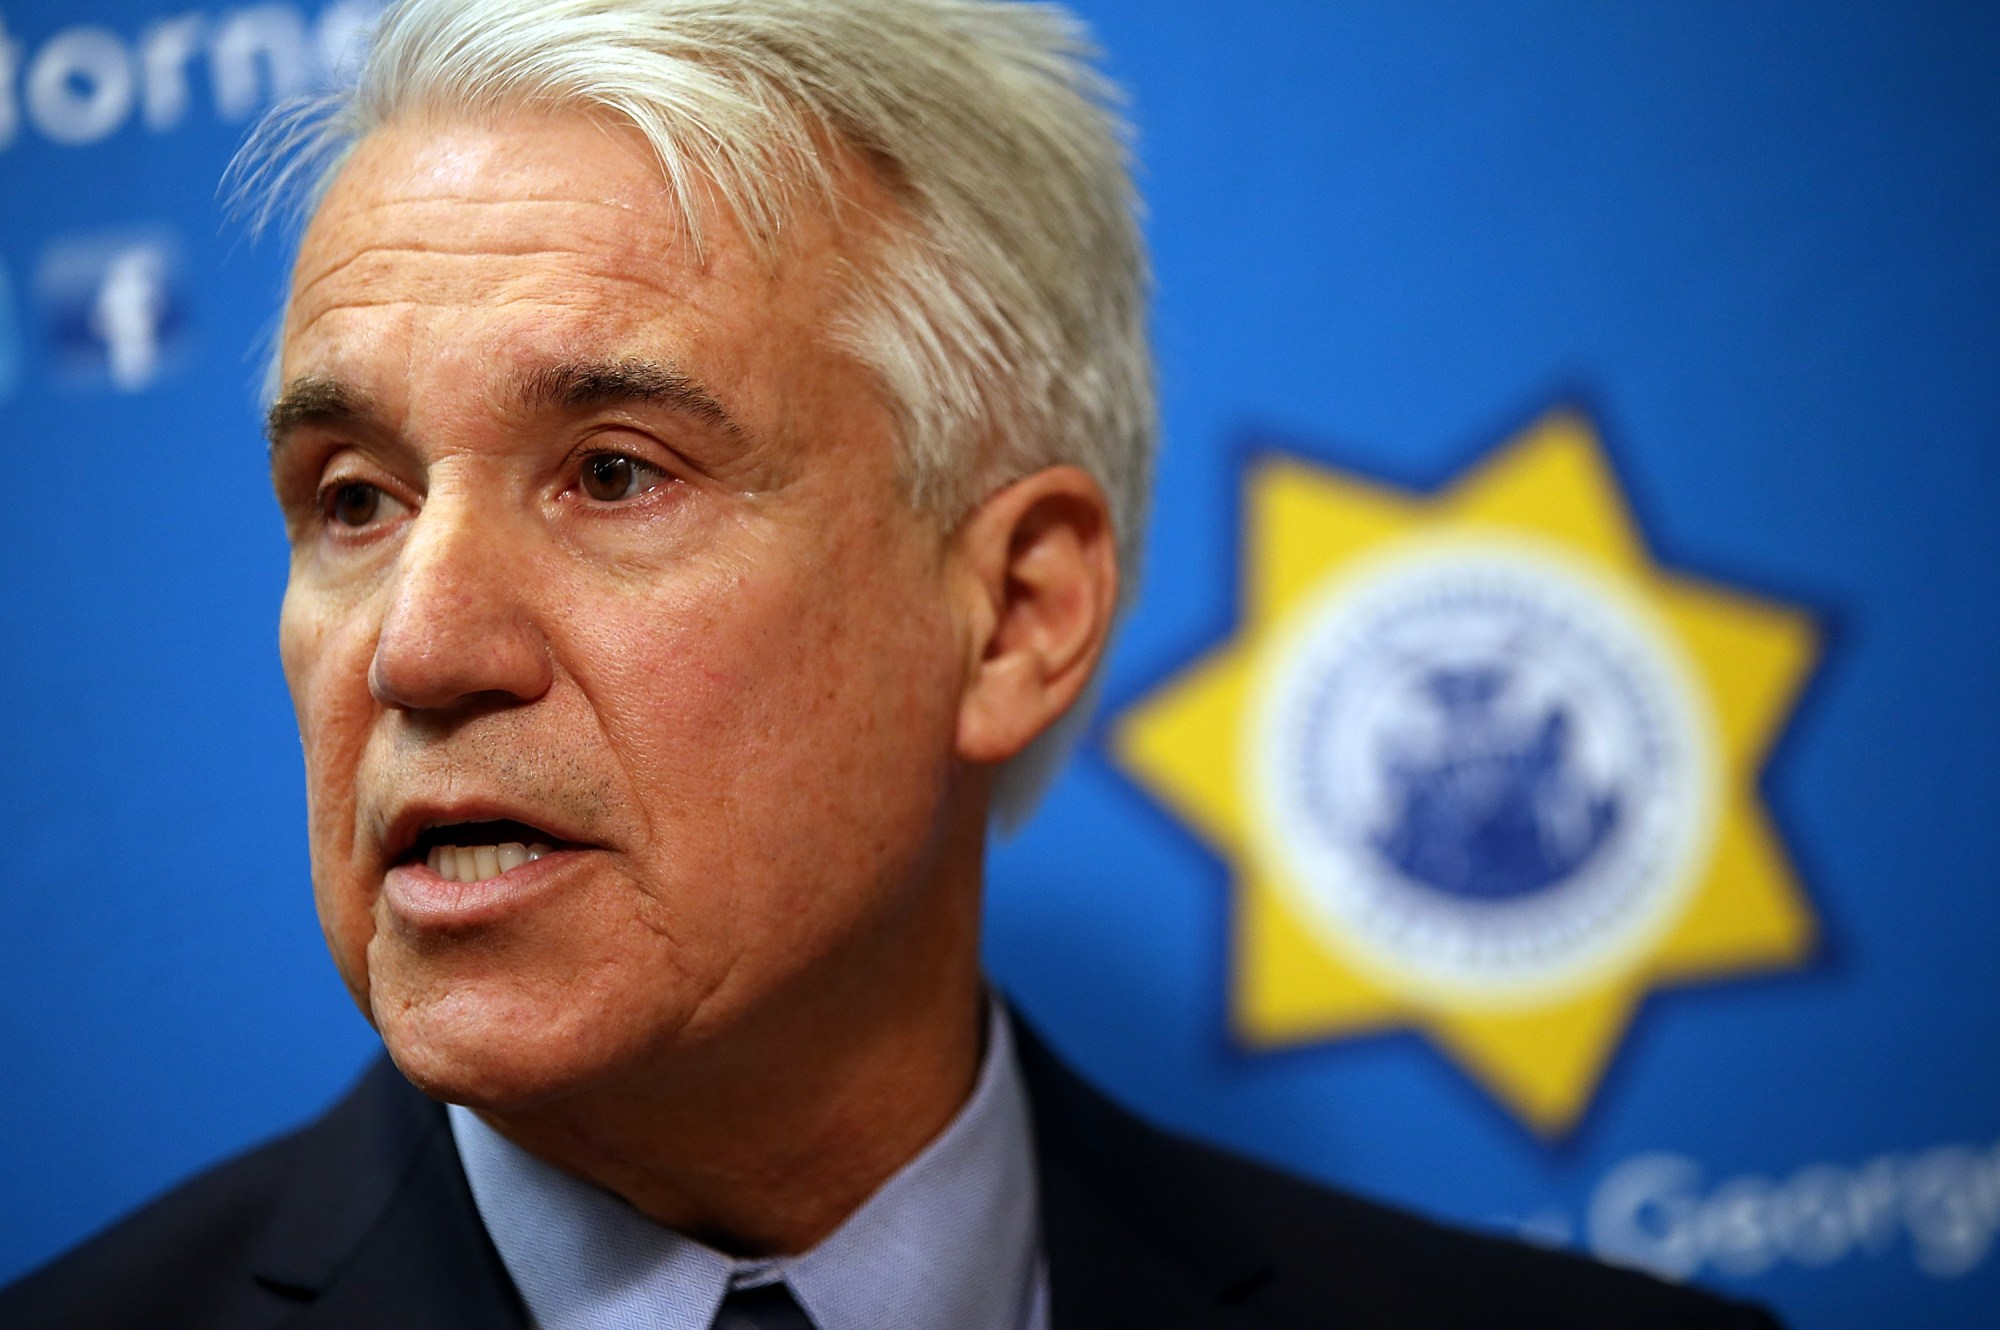 San Francisco District Attorney George Gascon speaks during a new conference on Dec. 9, 2014. (Justin Sullivan / Getty Images)